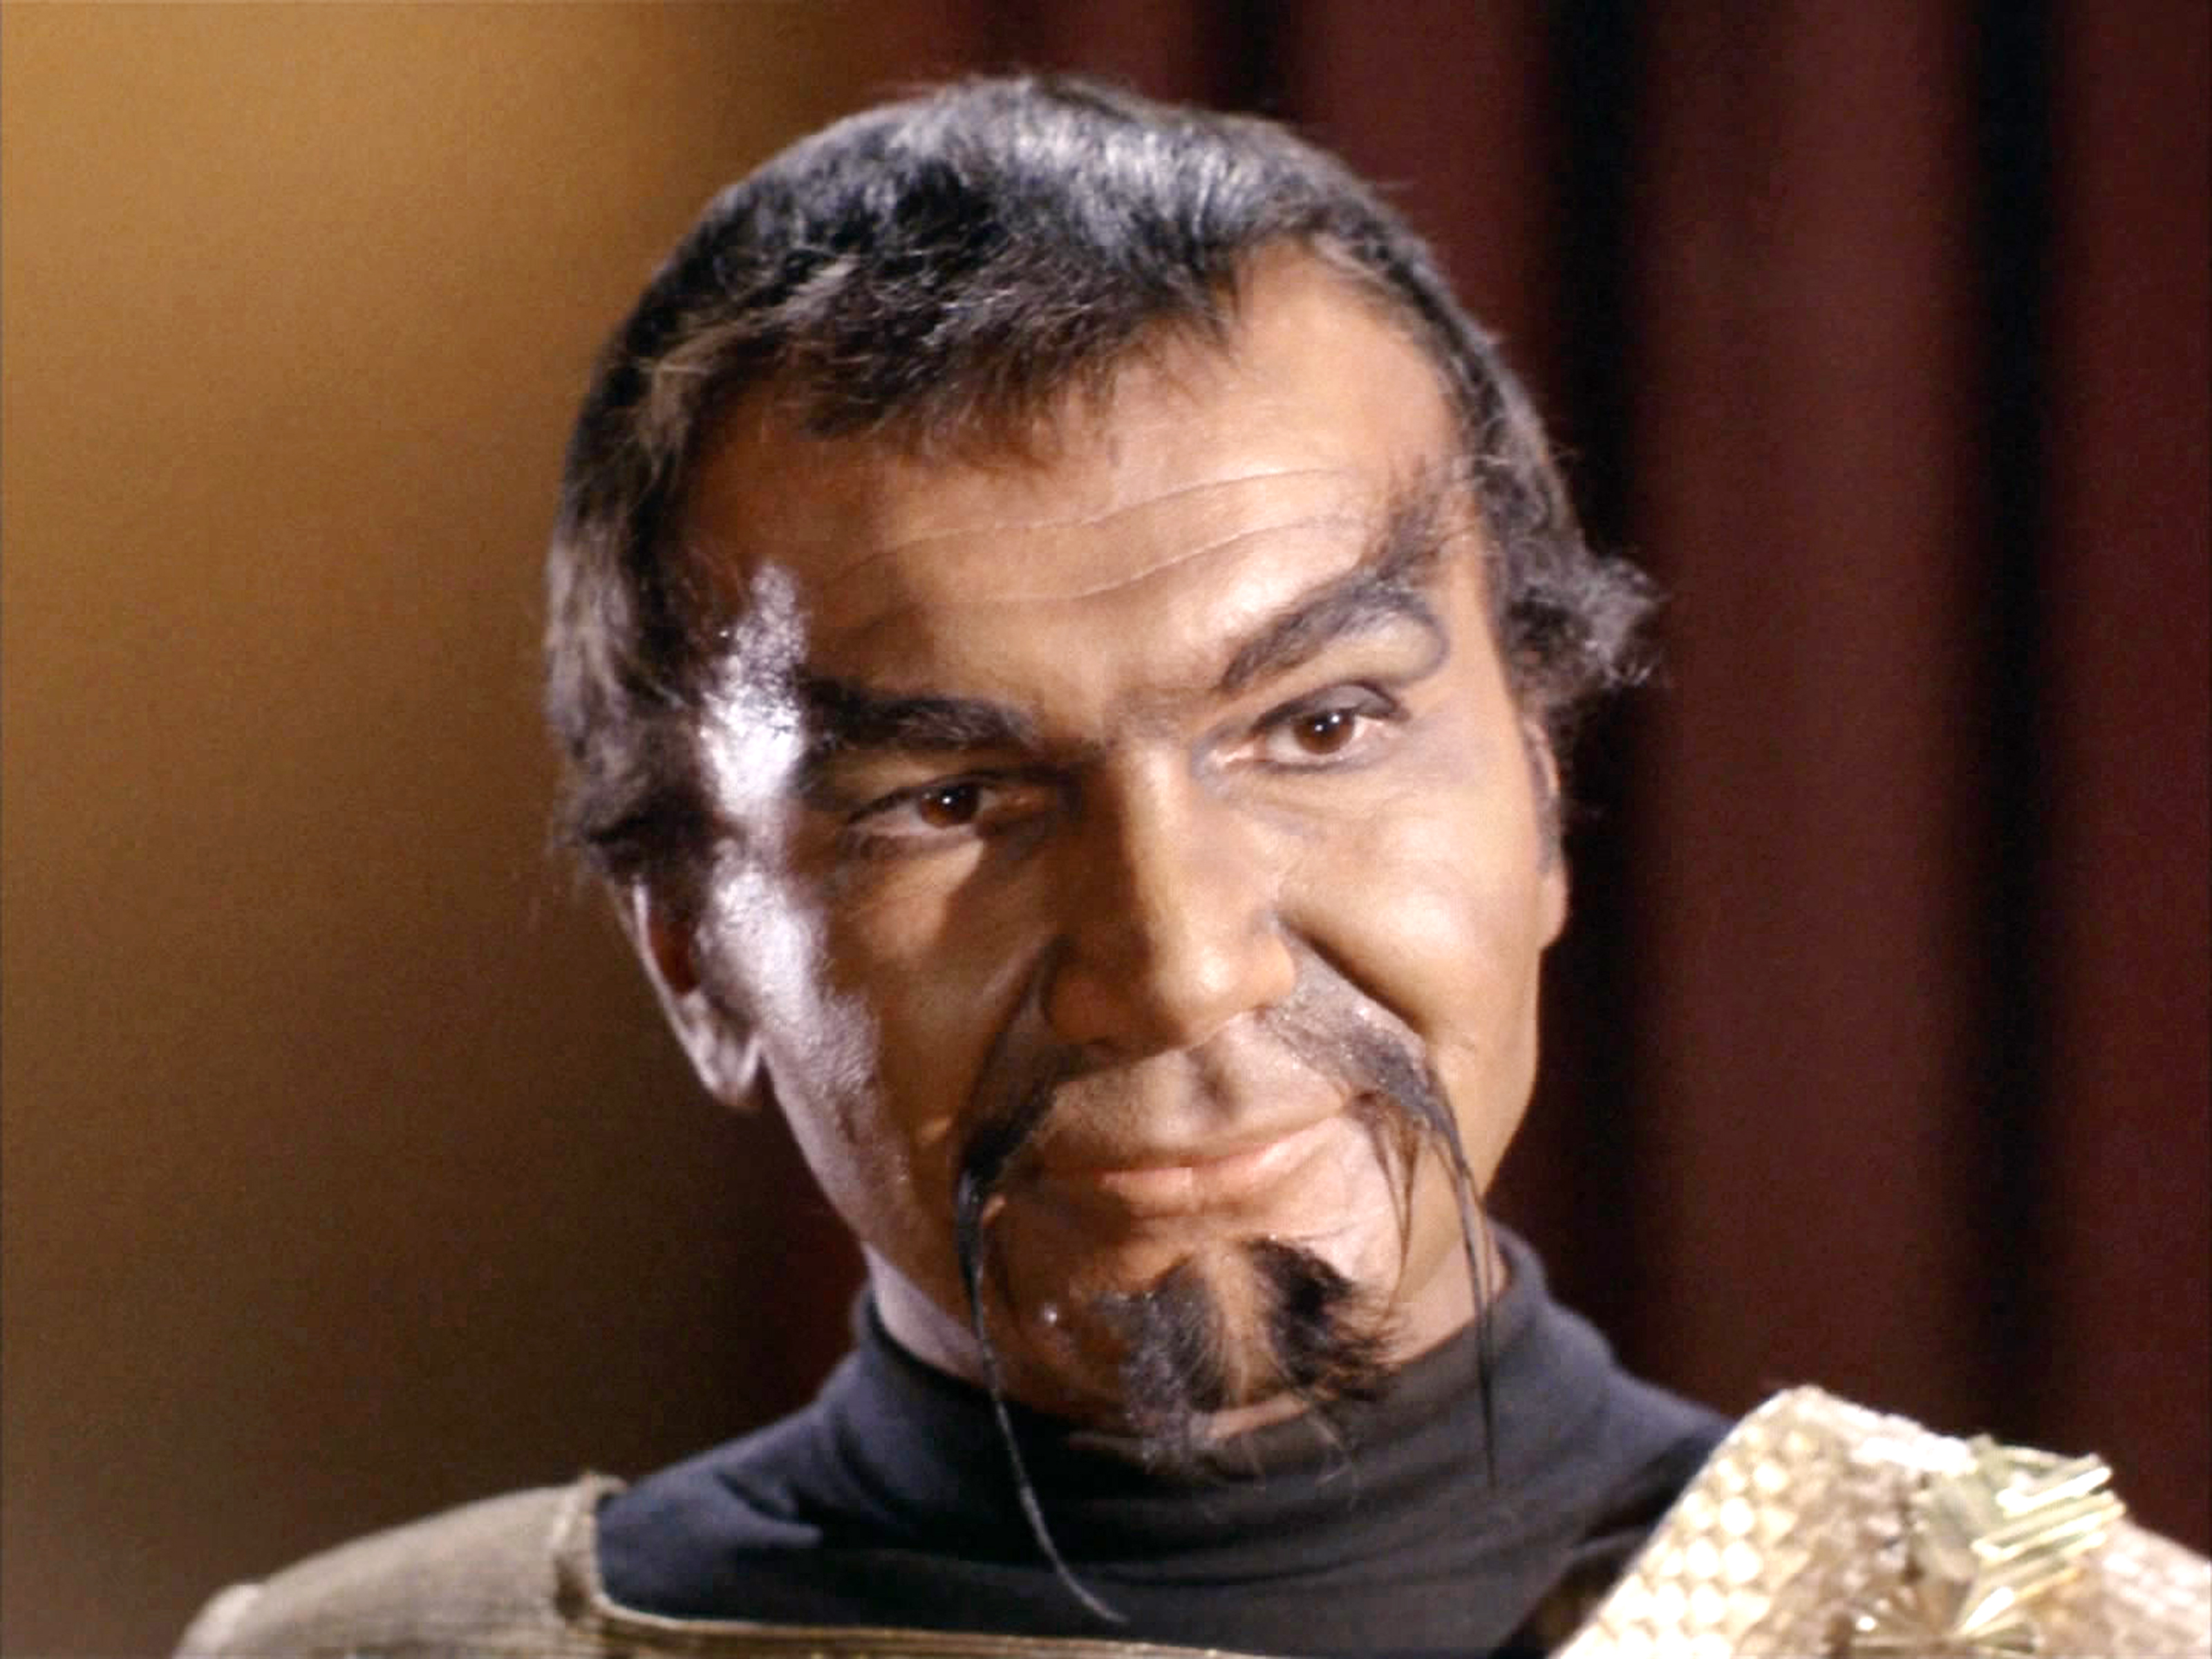 Seen here, John Colicos as Kor (a Klingon) in the STAR TREK episode,  Errand of Mercy.